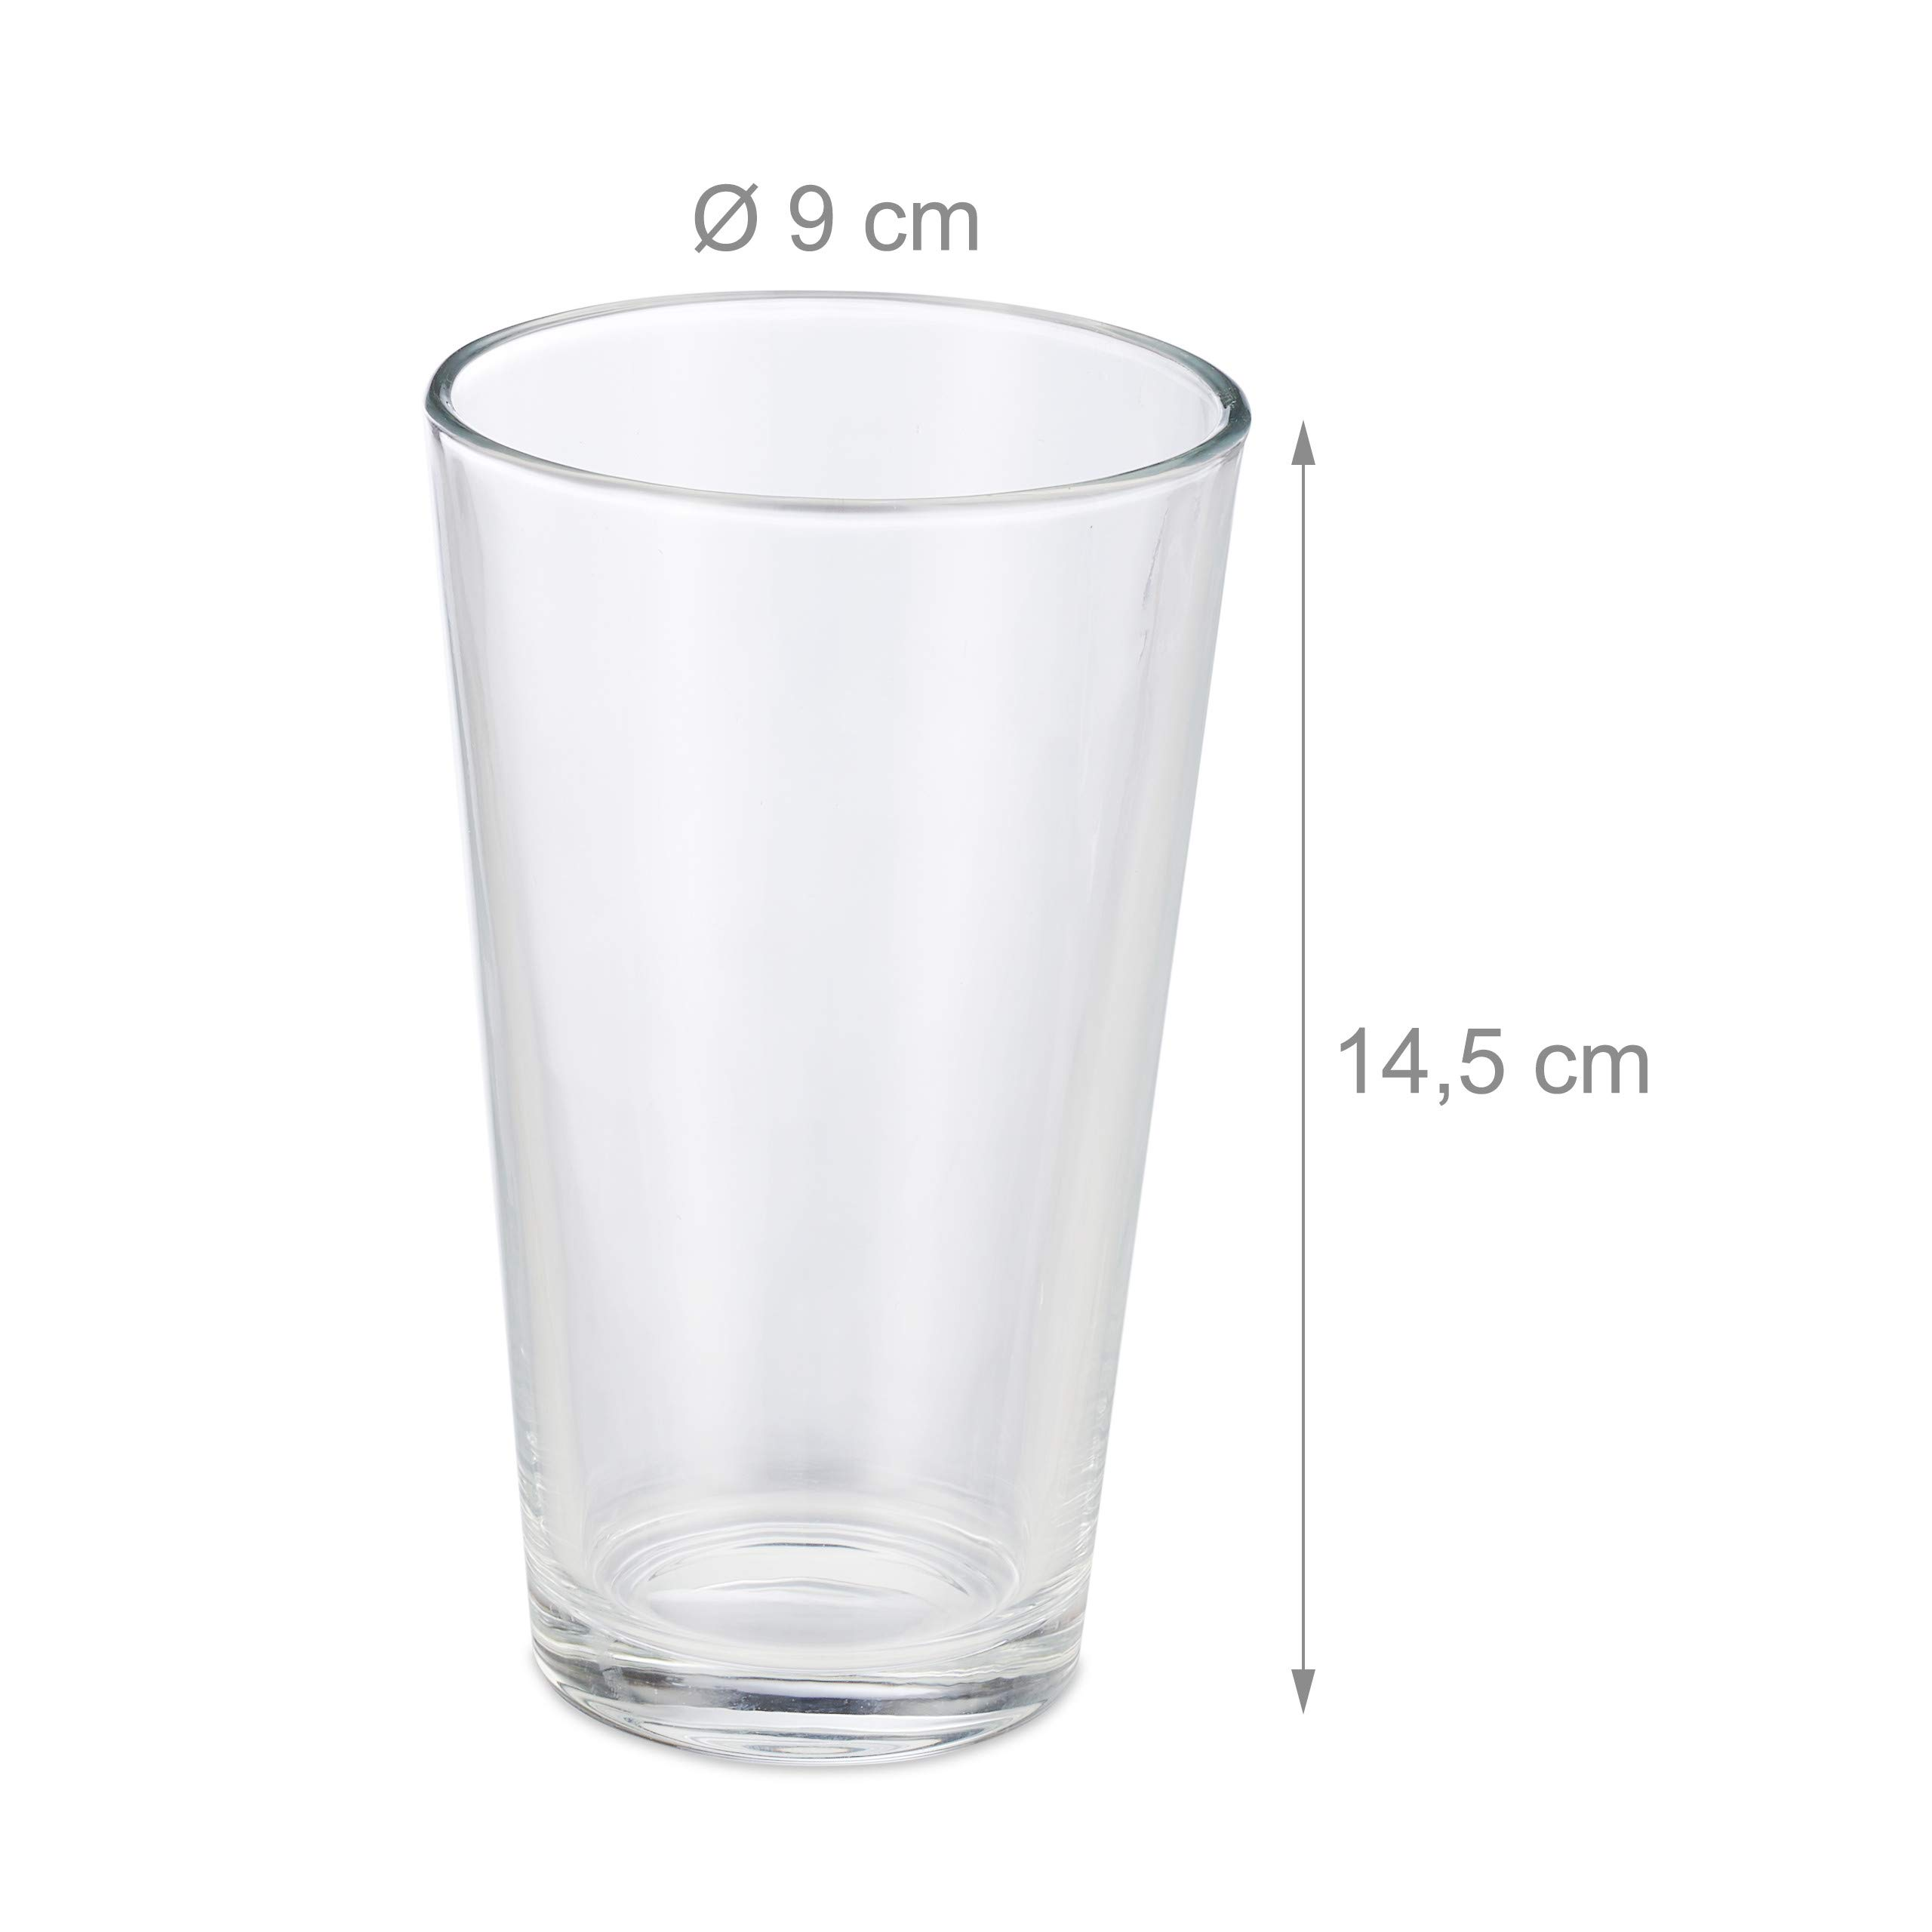 Relaxdays 10023413 Set of 18 Drinking Glasses Thick-Walled Water Glasses Simple Design Dishwasher Safe 500 ml Transparent Glass by Relaxdays (Image #4)